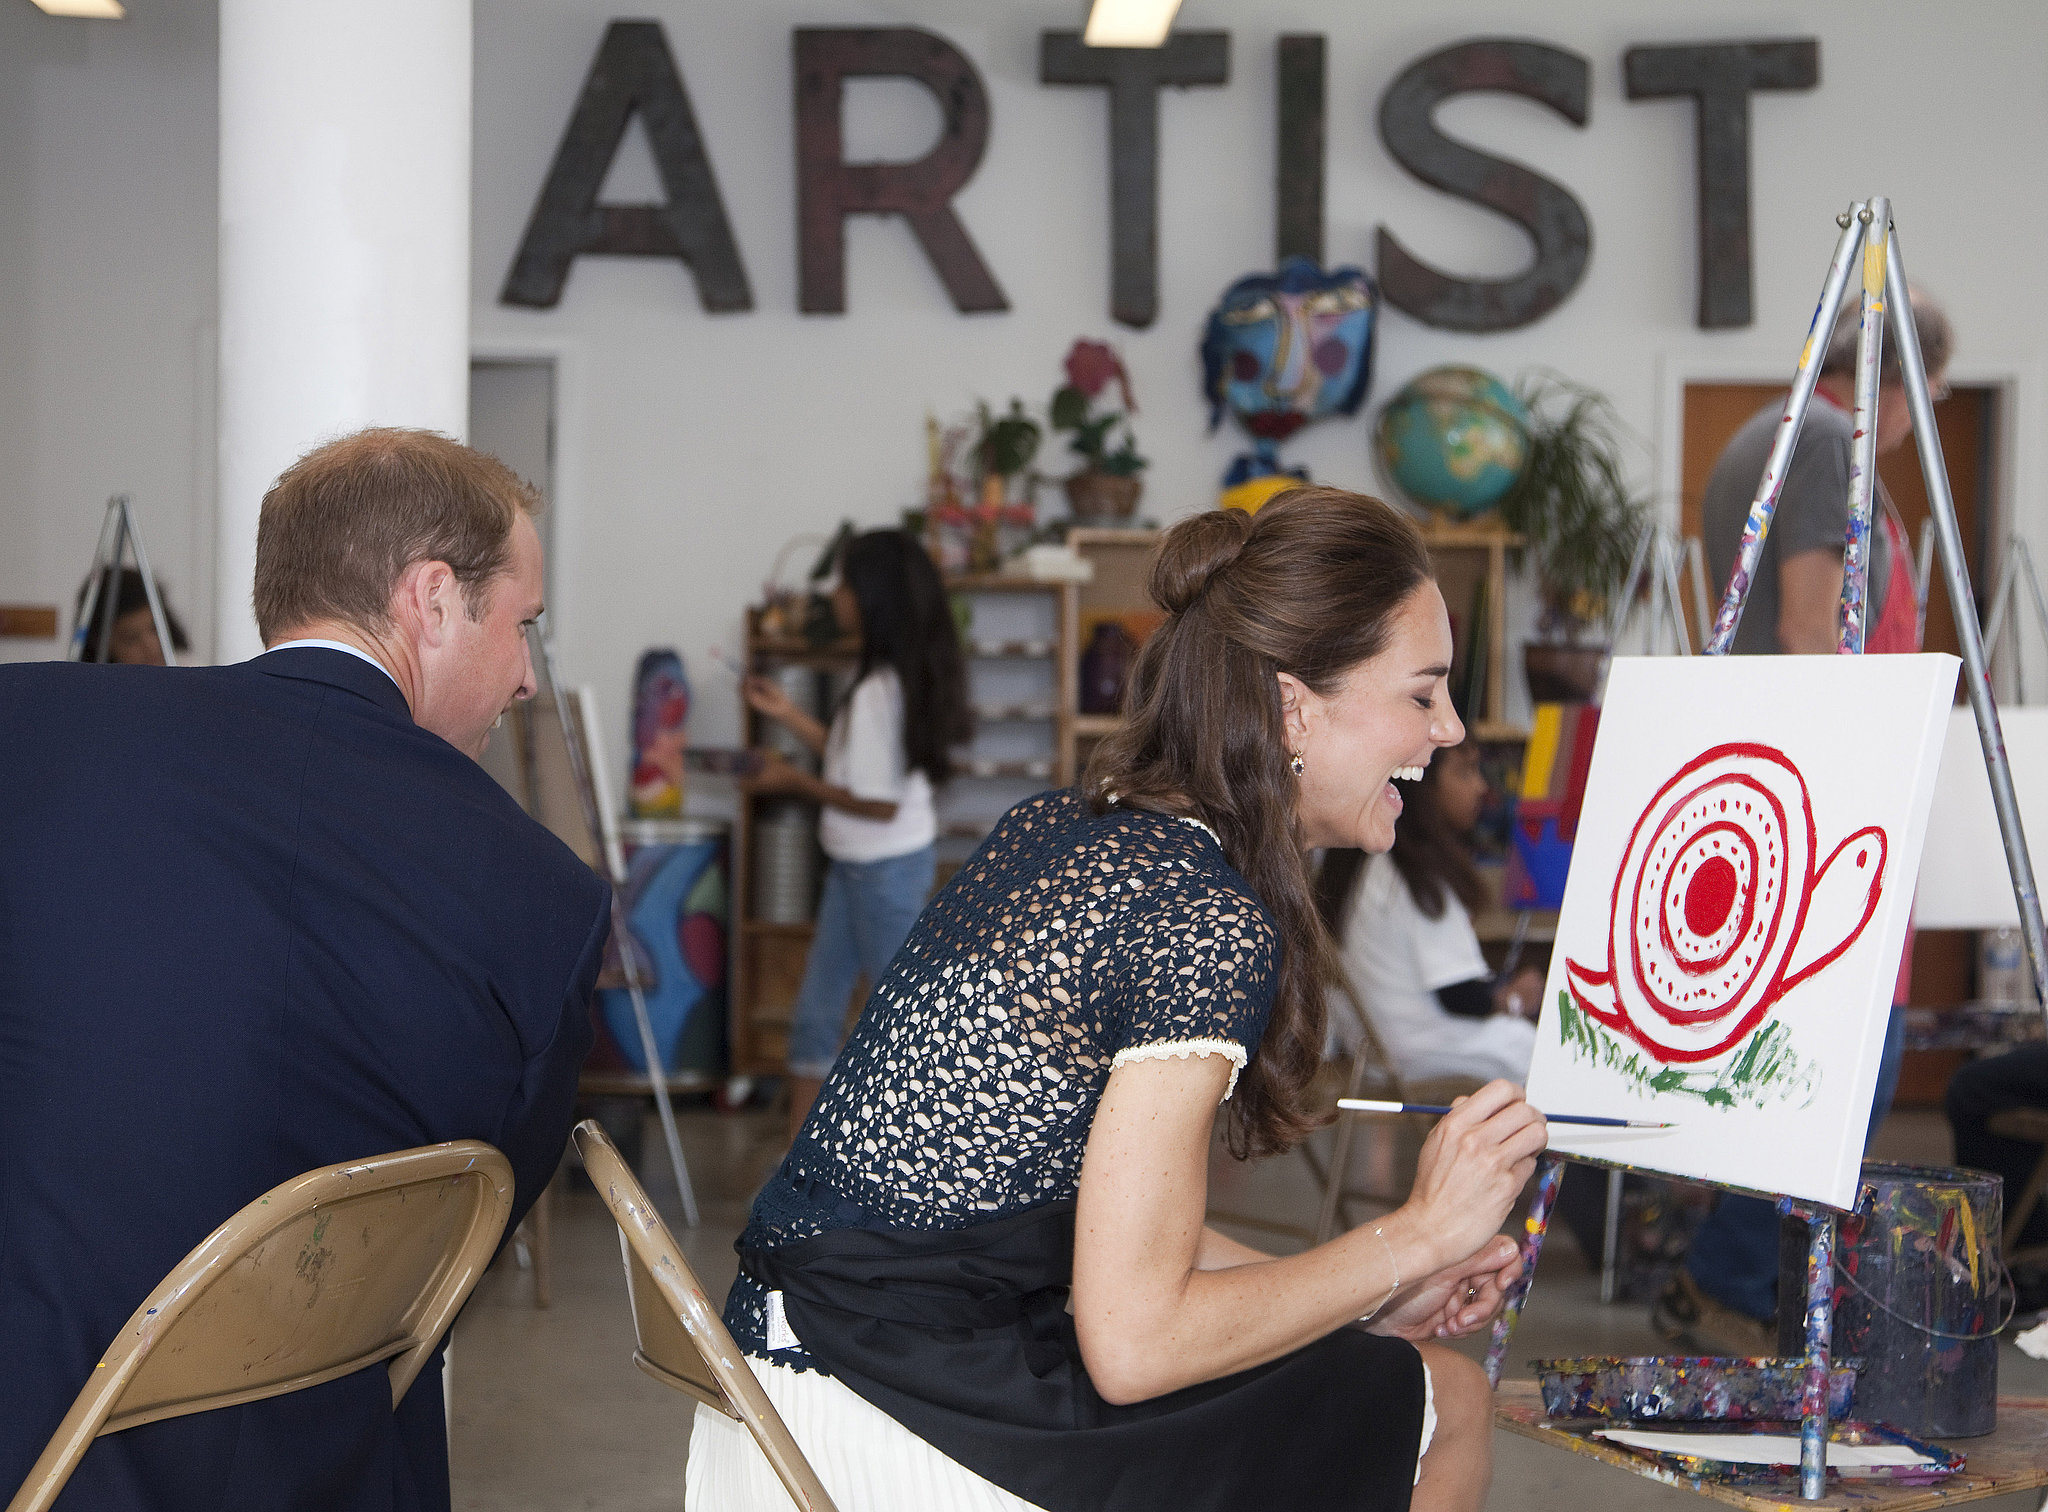 In July 2011, William and Kate visited an inner city art program in LA and joked about each other's paintings.